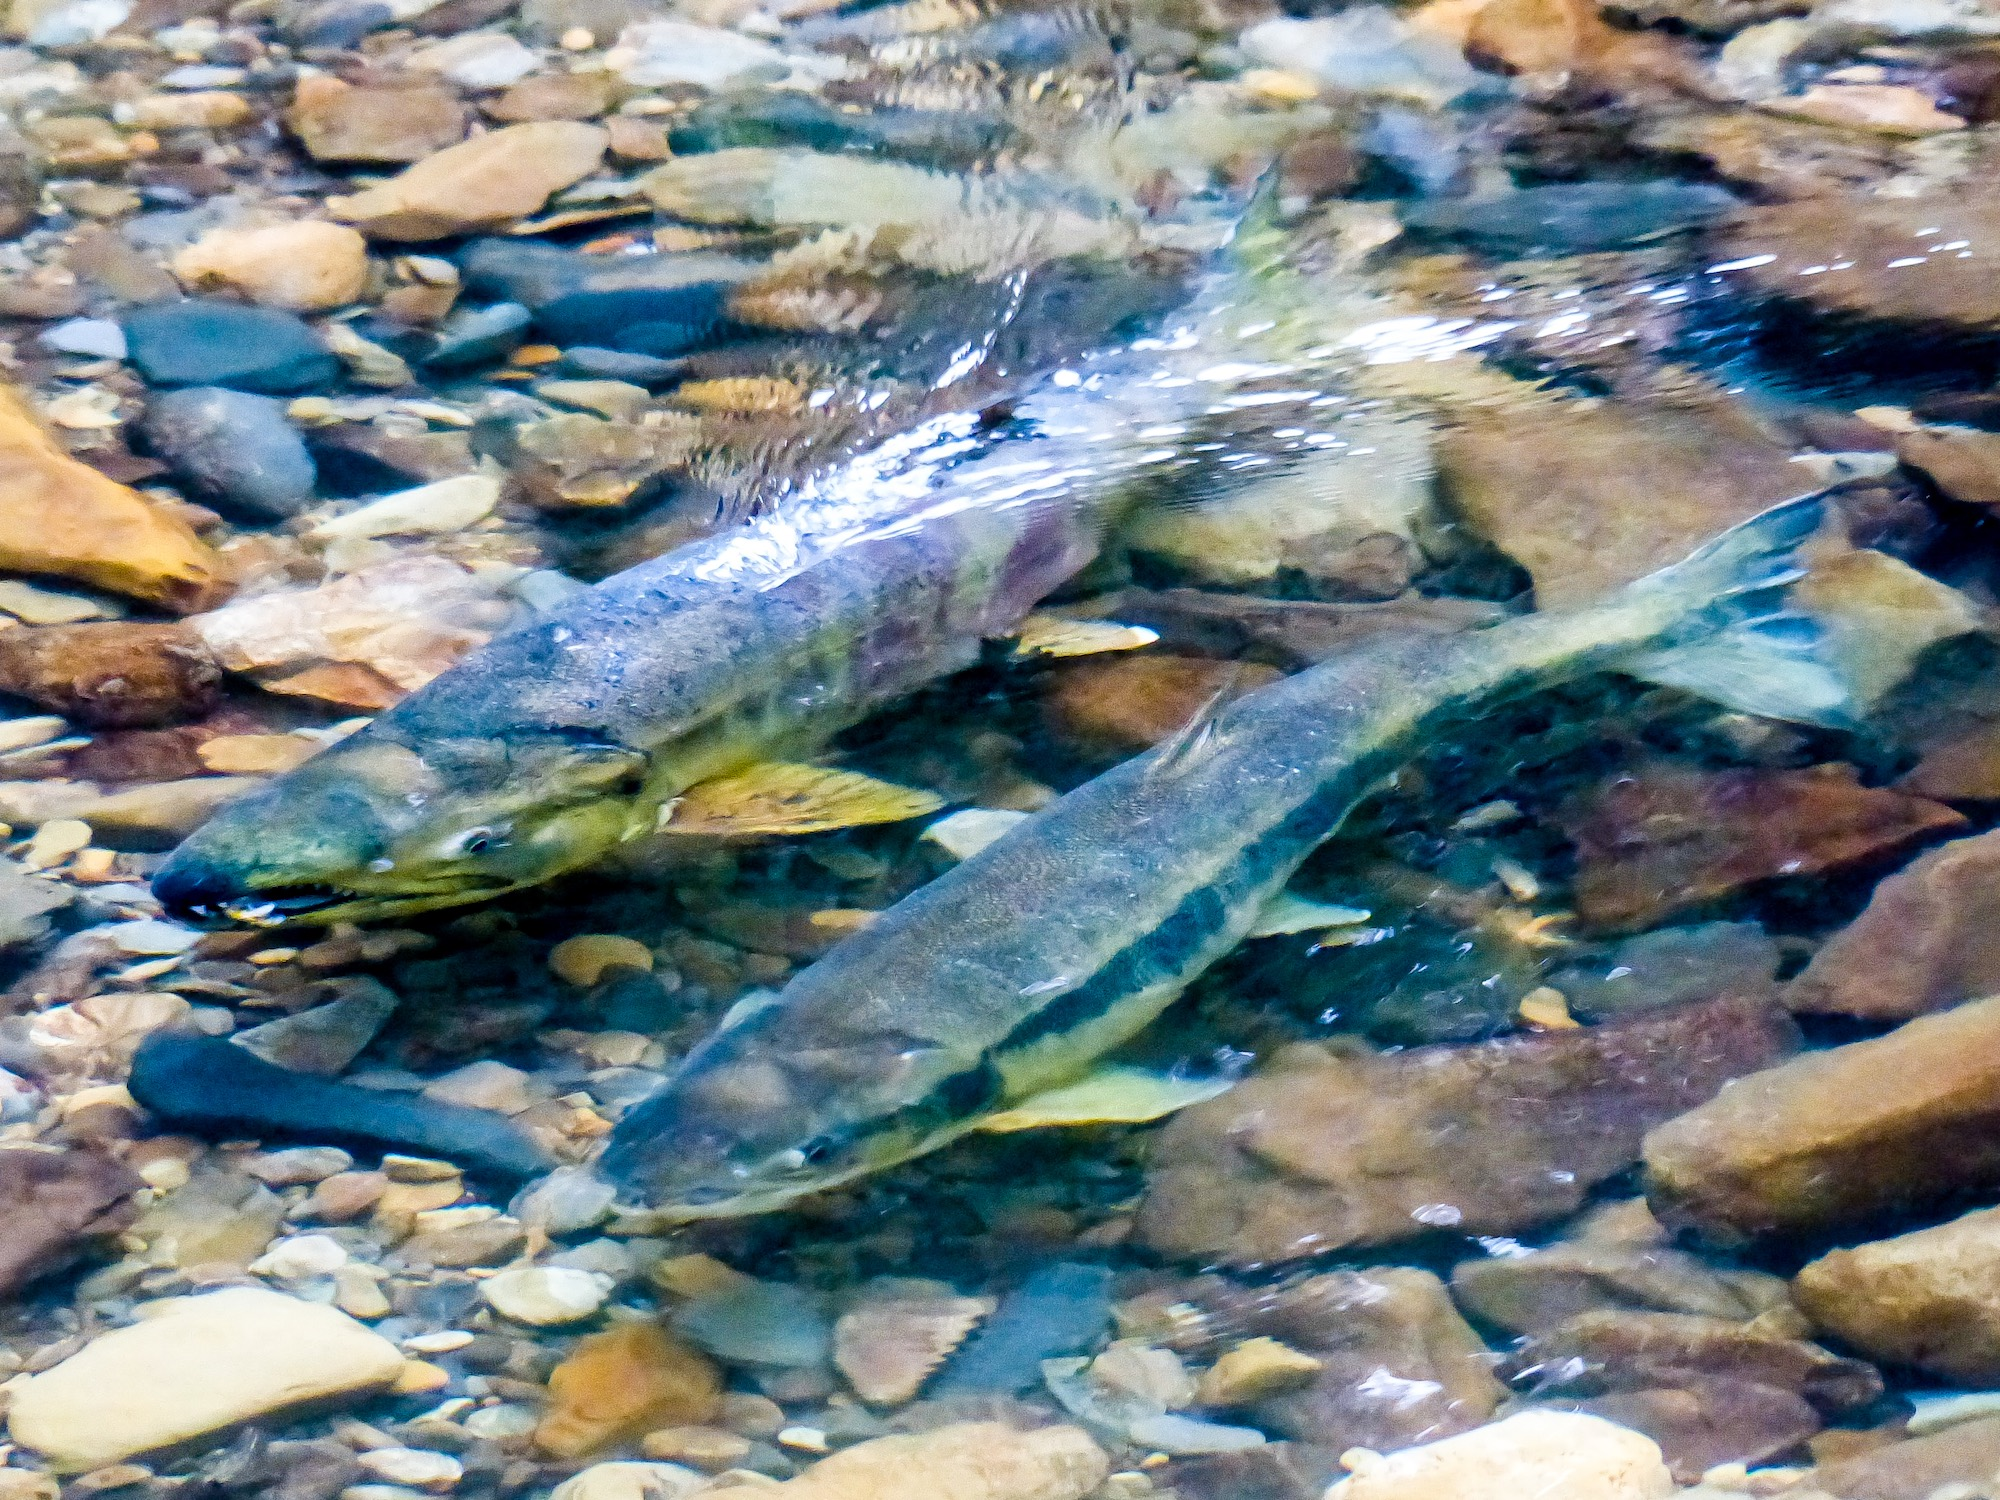 Chum salmon (Photo by David Ryan for TNC)